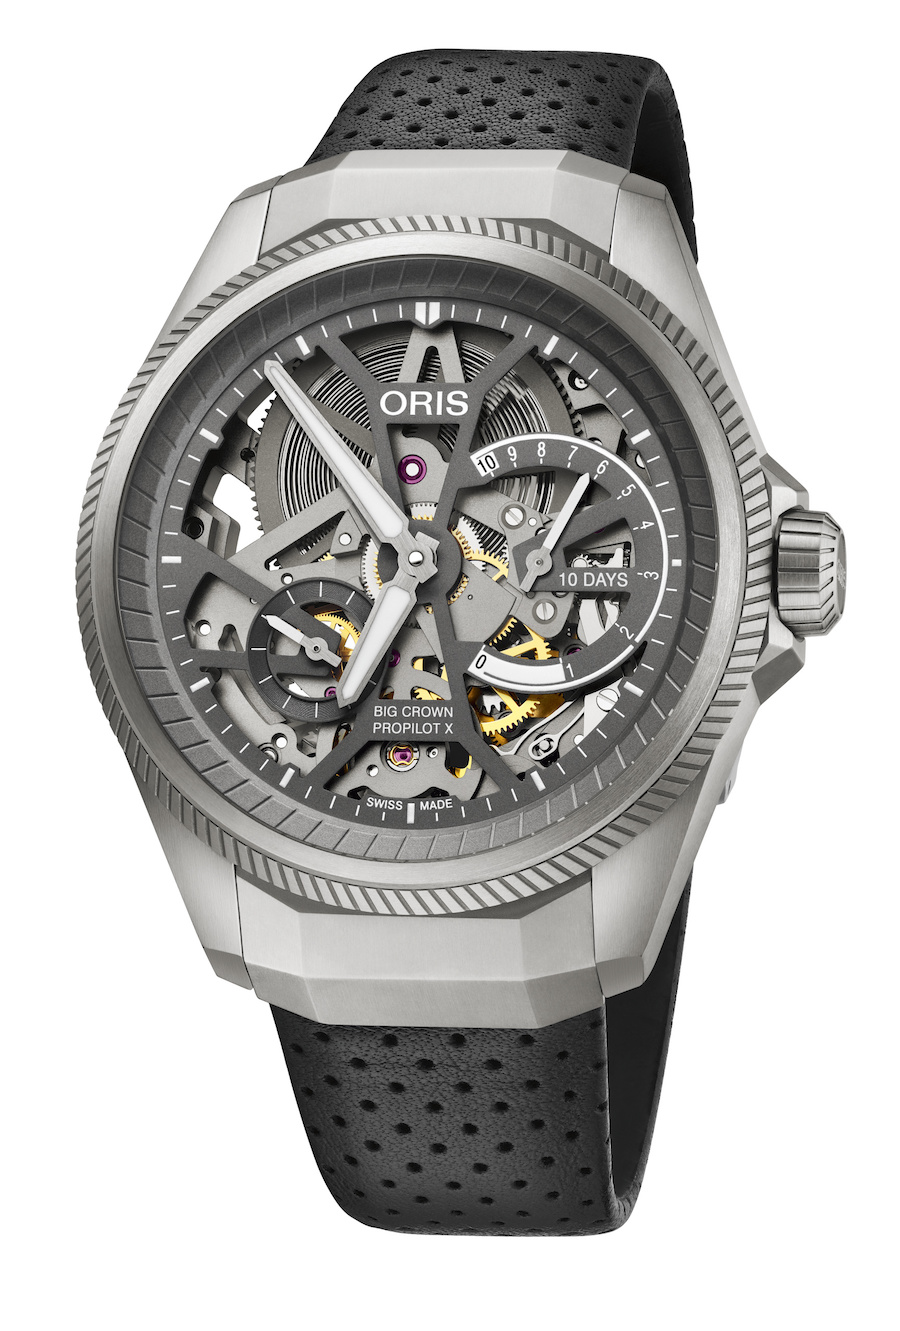 Oris Big Crown ProPilot X Calibre 115 watch